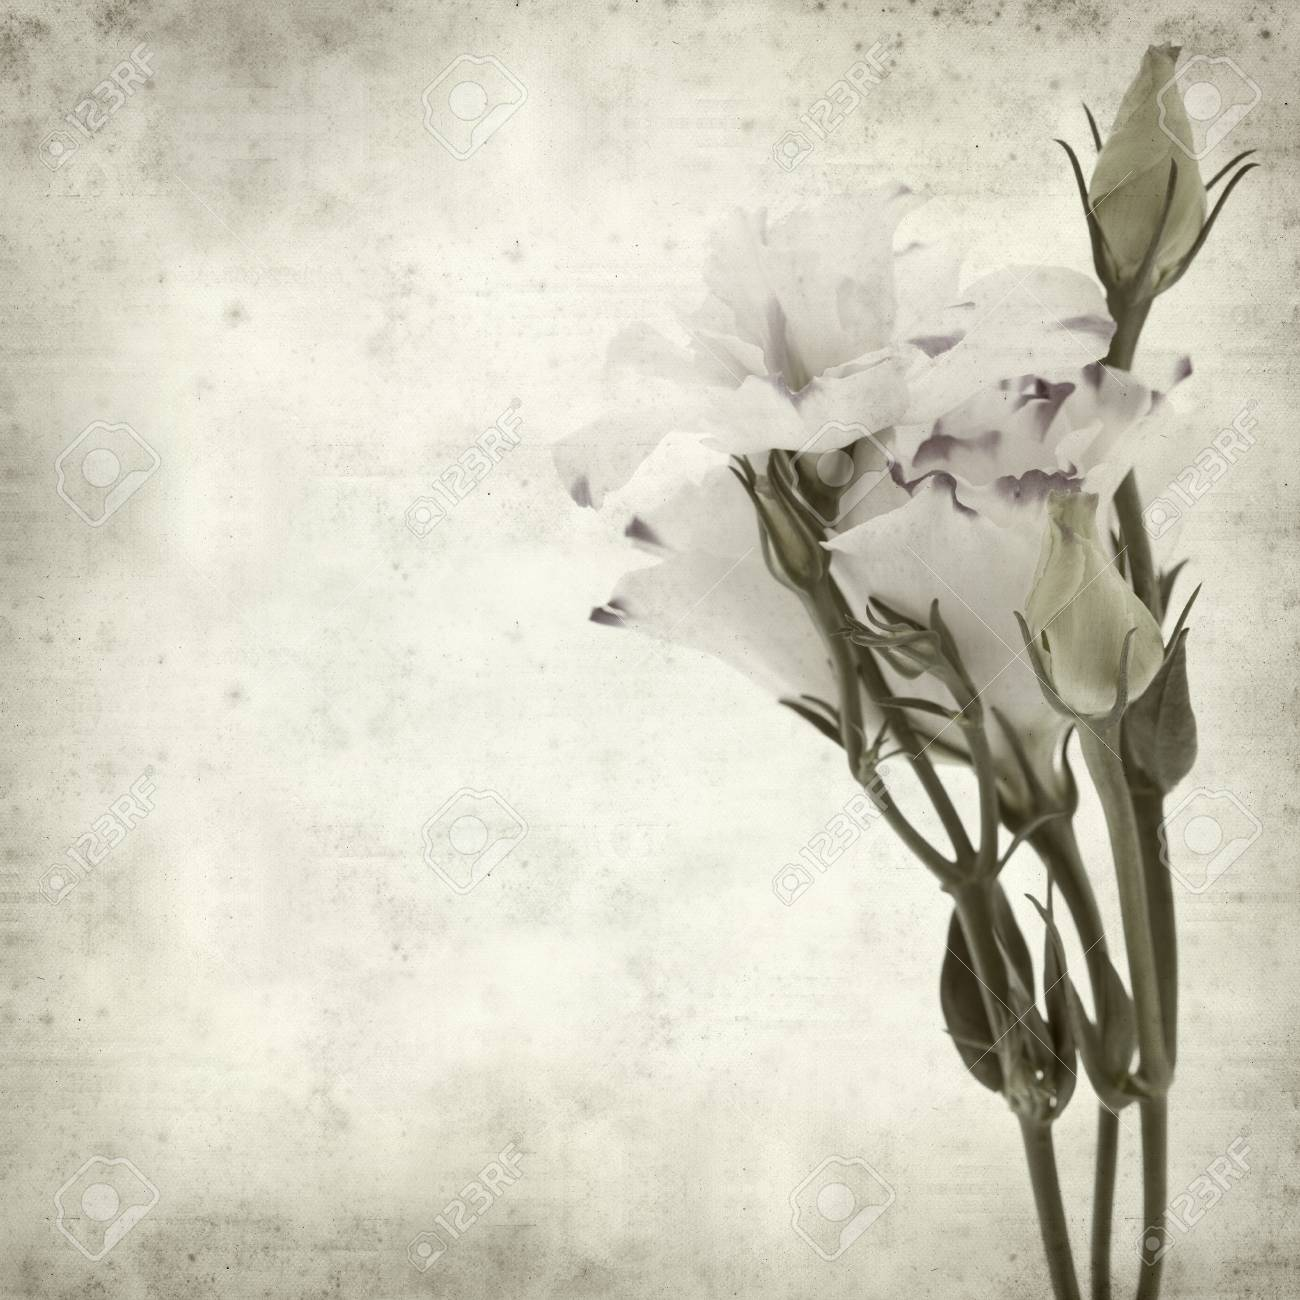 Textured Old Paper Background With White And Blue Lisianthus Stock